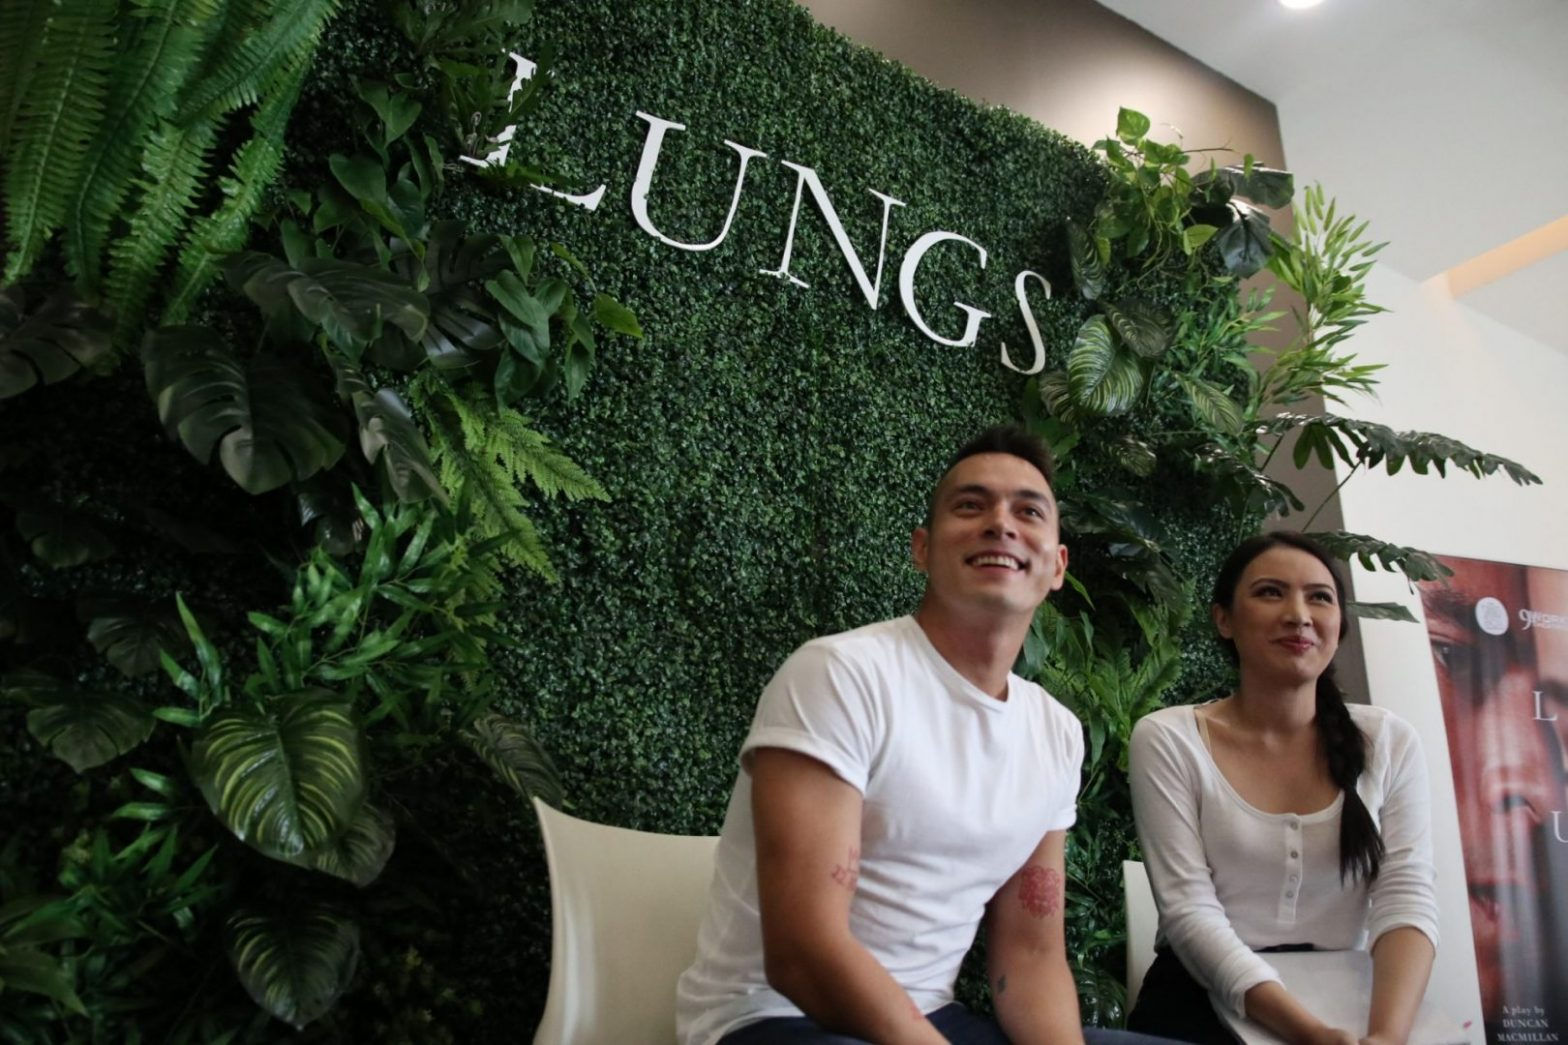 #LungsMNL opens on Sept. 22